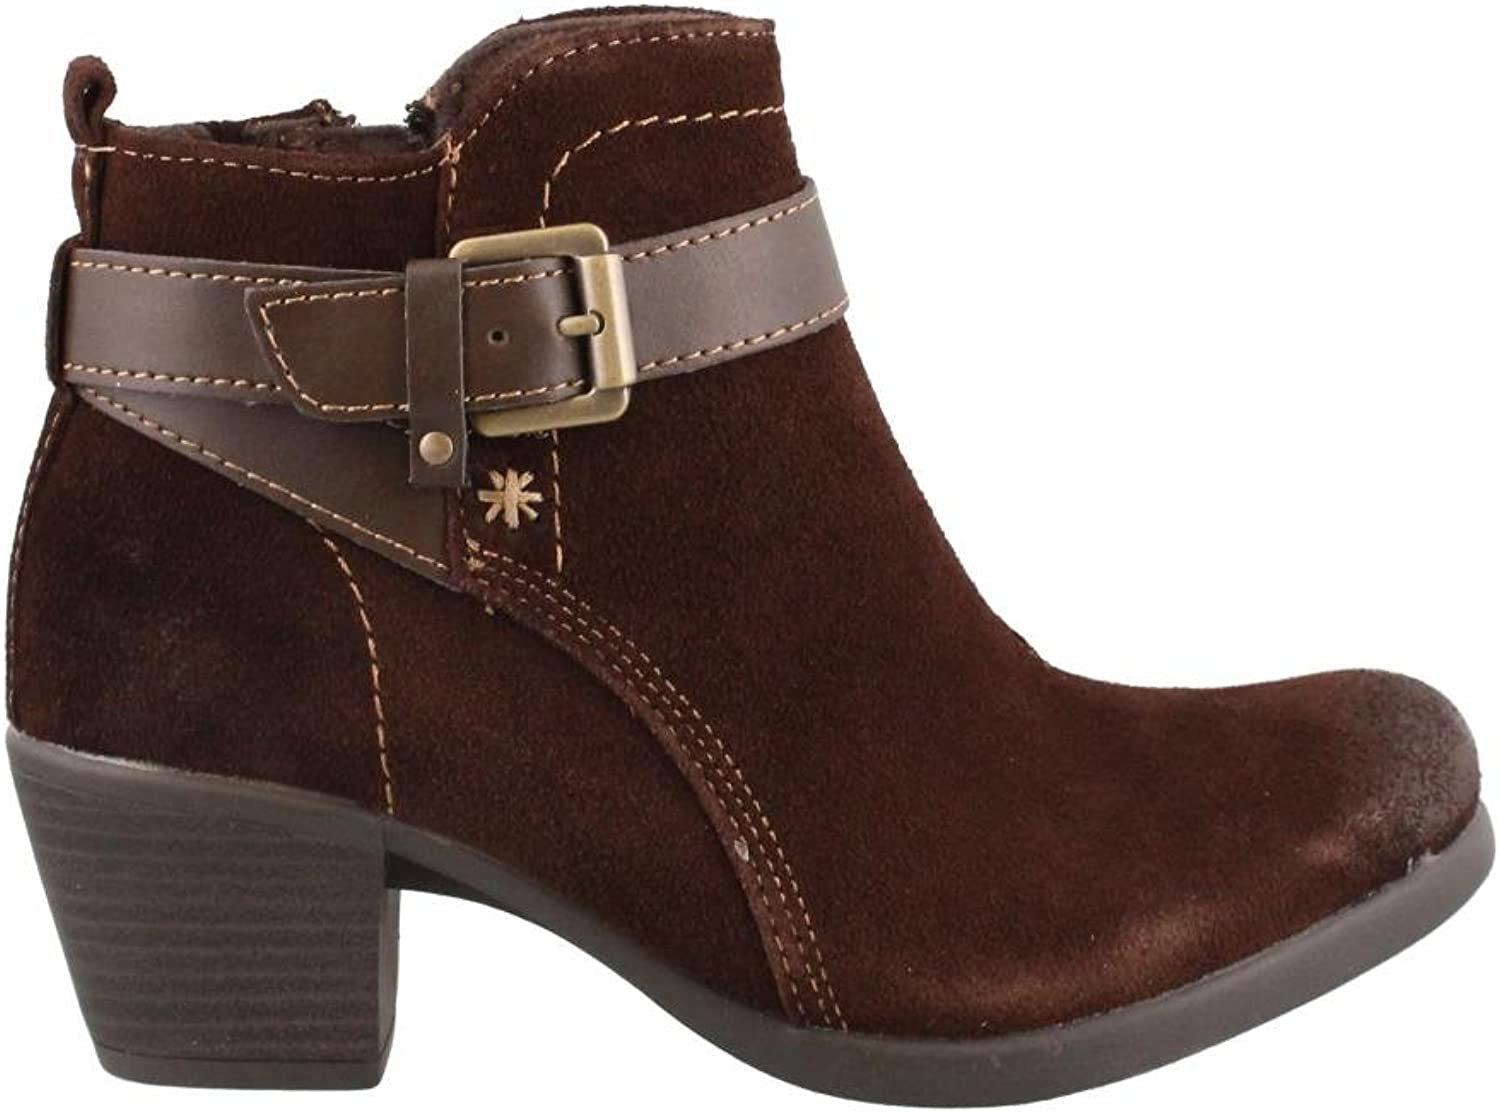 Women's Earth Origins, Kaia Ankle Boots BROWN 6 M